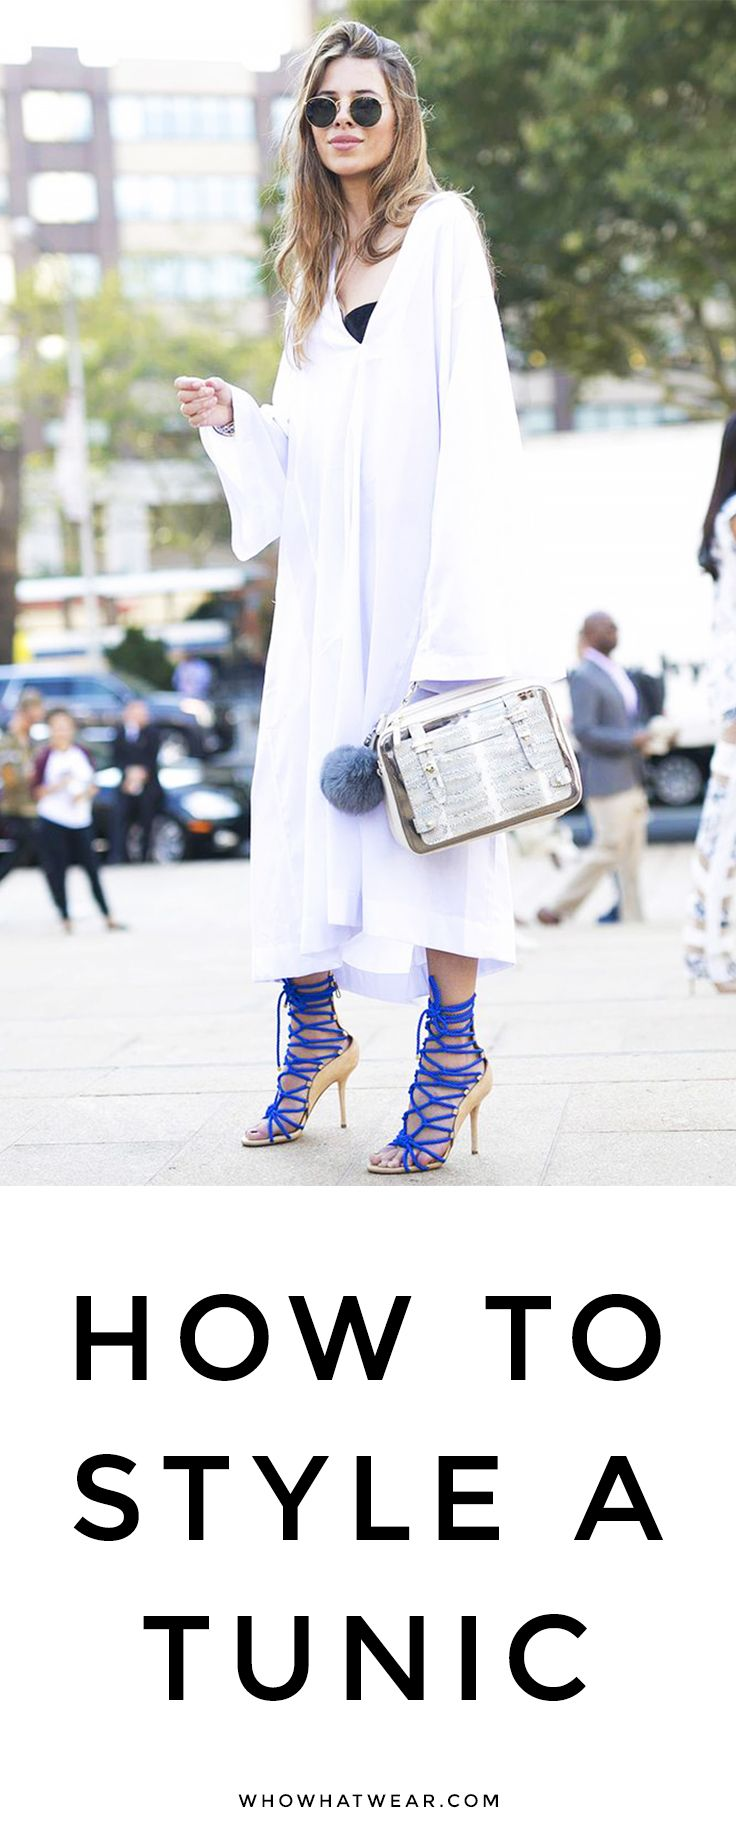 Shop the Top Thats Dominating the Street Style Scene